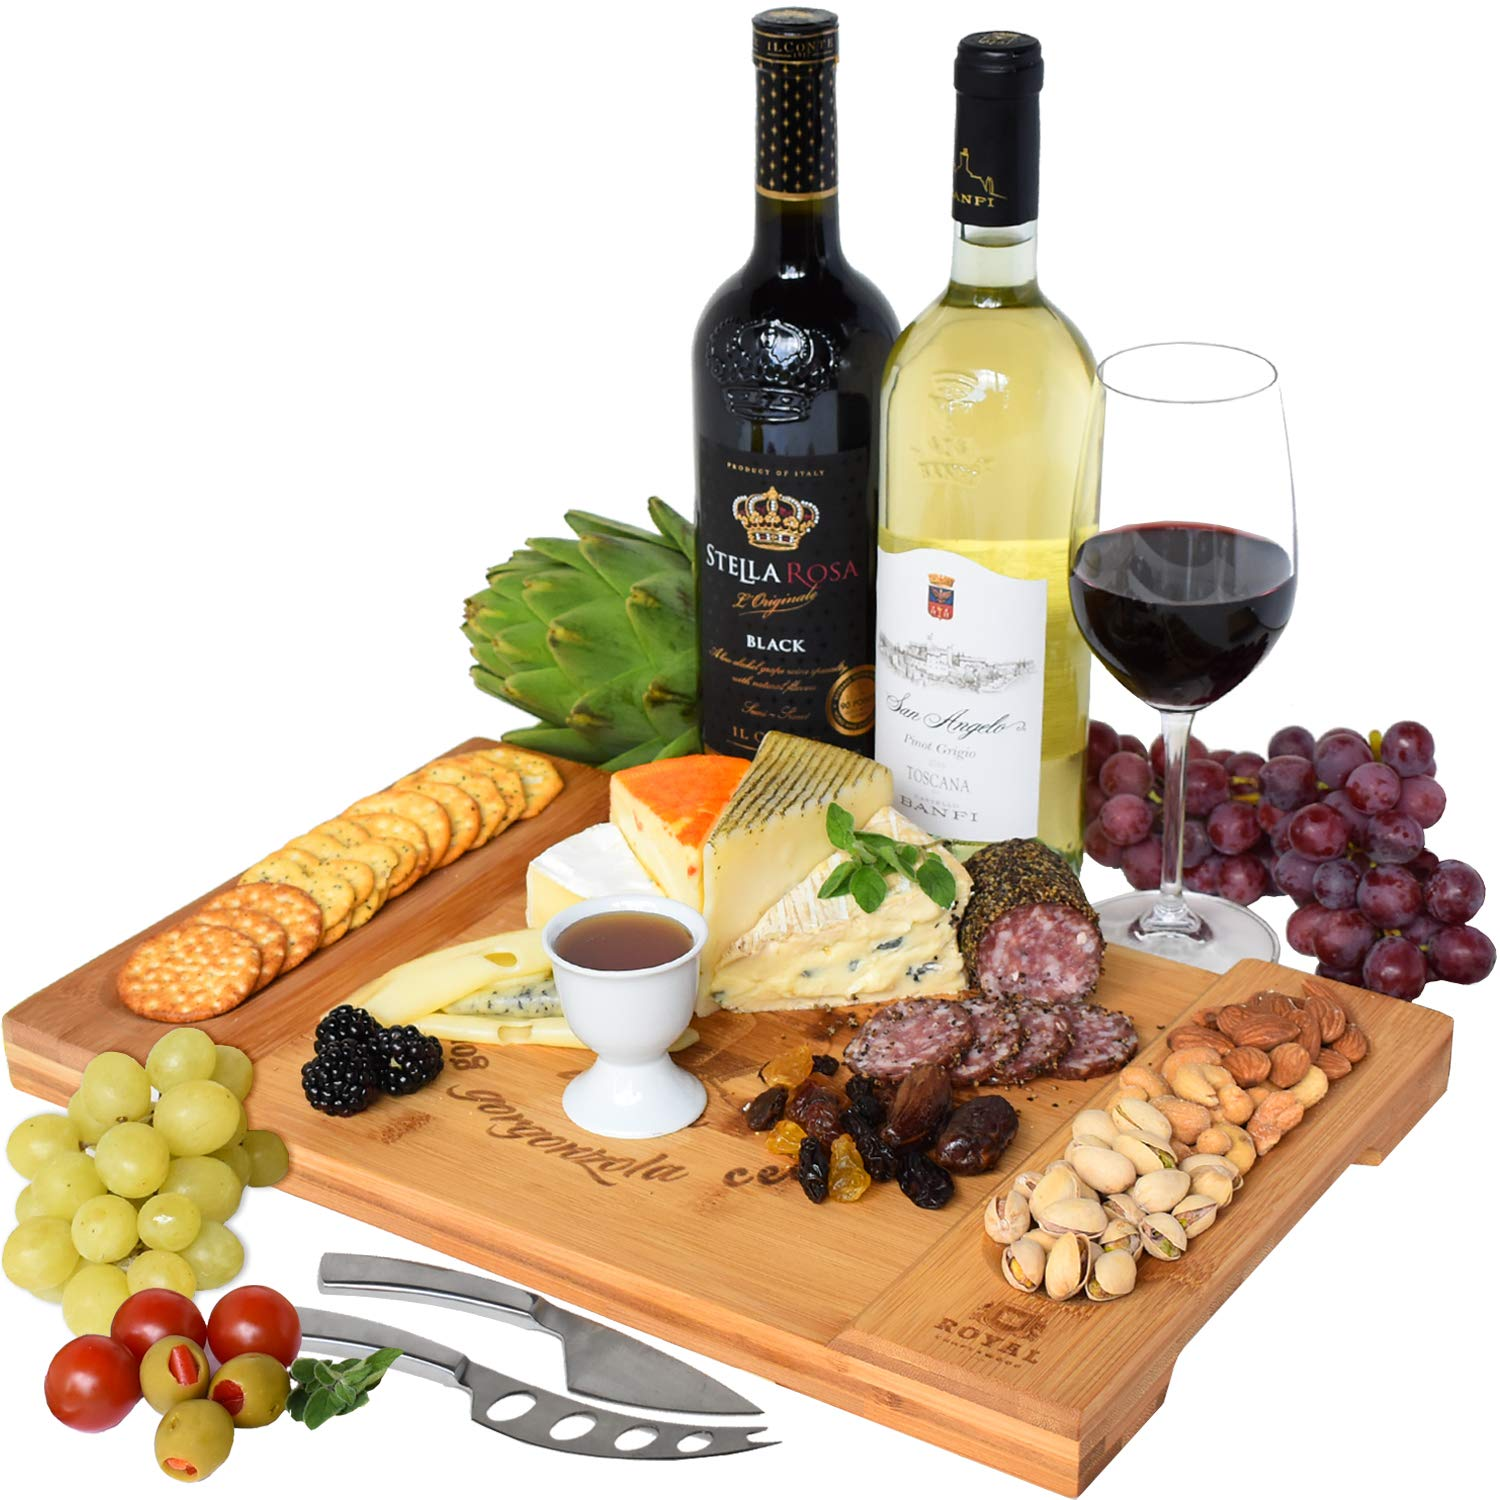 Unique Bamboo Cheese Board Brie and Meat Charcuterie Platter and Serving Tray for Wine Crackers Fancy House Warming Gift /& Perfect Choice for Gourmets Large and Thick Natural Wooden Server